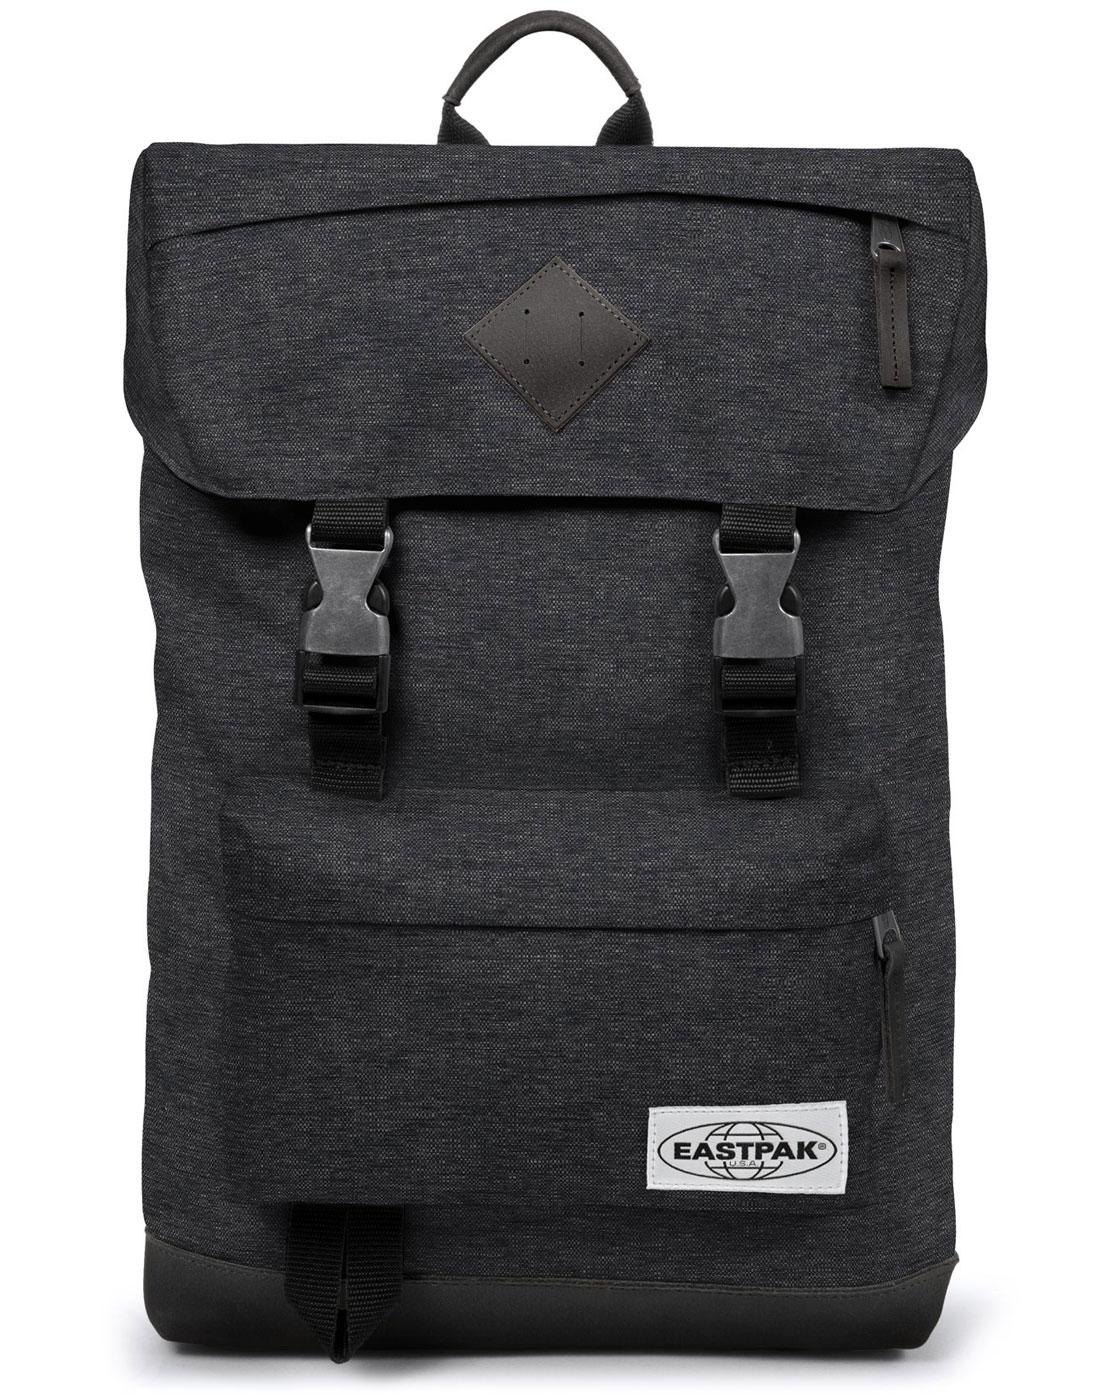 Rowlo EASTPAK Laptop Backpack - Into Black Yarn